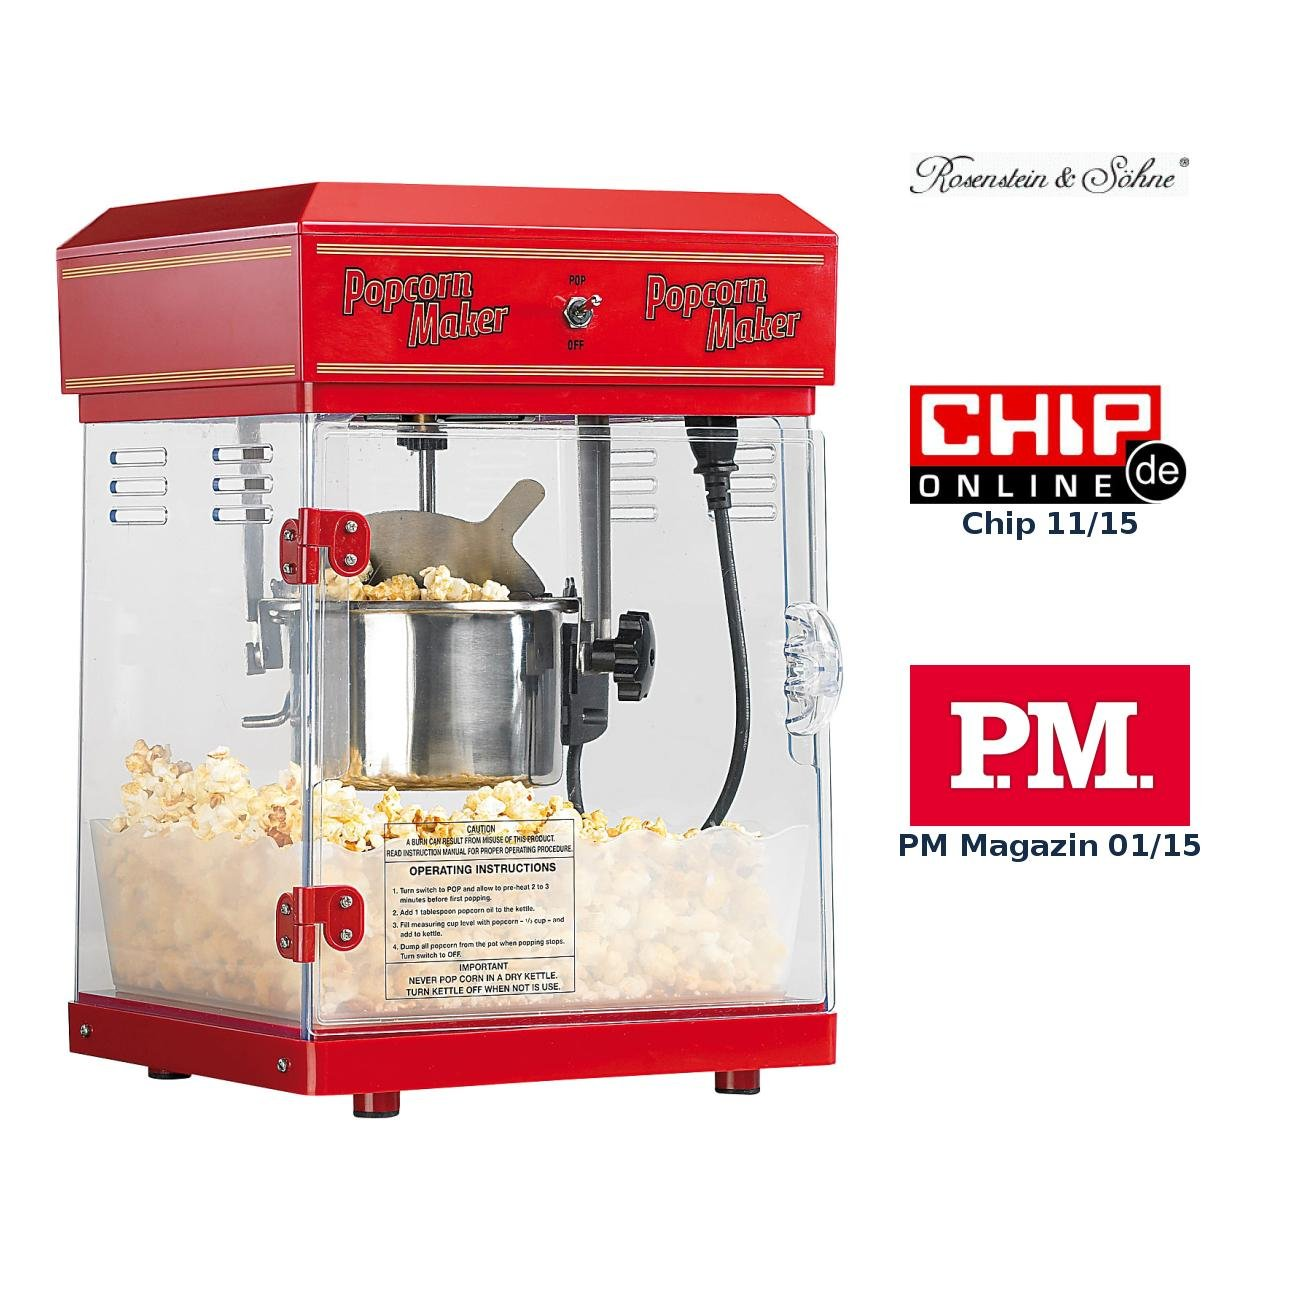 Werbung: Popcorn Maker - Retro Popcorn Maschine / Bild: Amazon.de